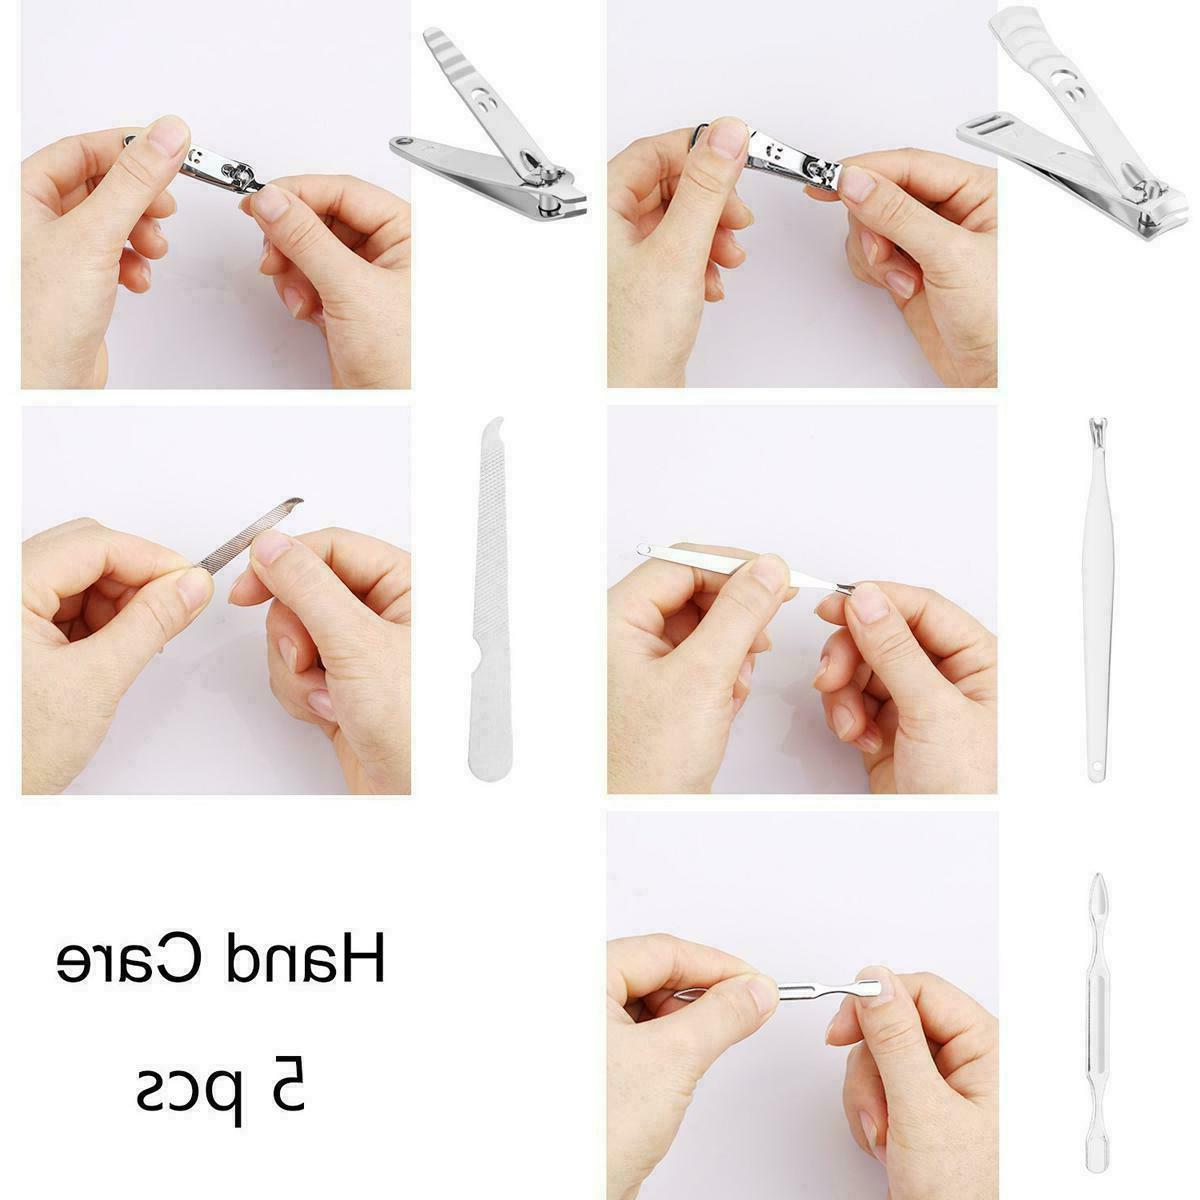 12 Manicure Nail Care Cuticle Clippers Kit Case